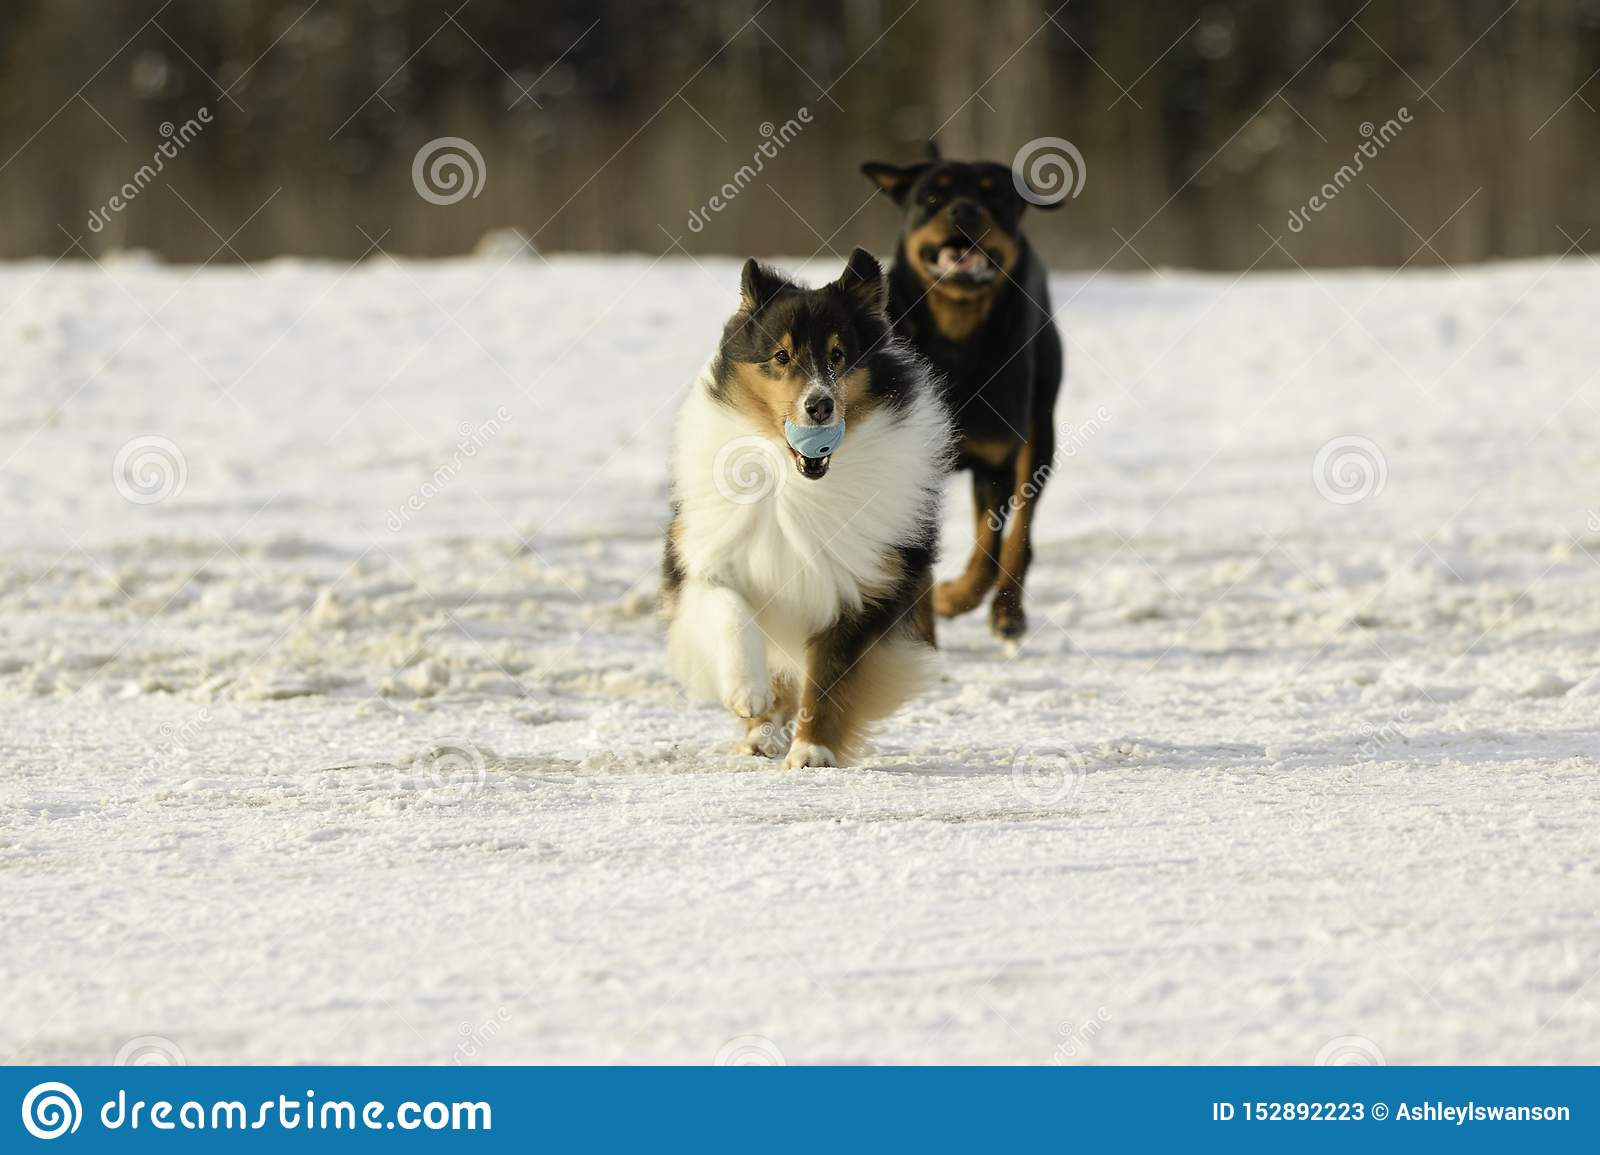 Shetland Sheepdog and Rottweiler Playing Fetch in the Snow in Winter